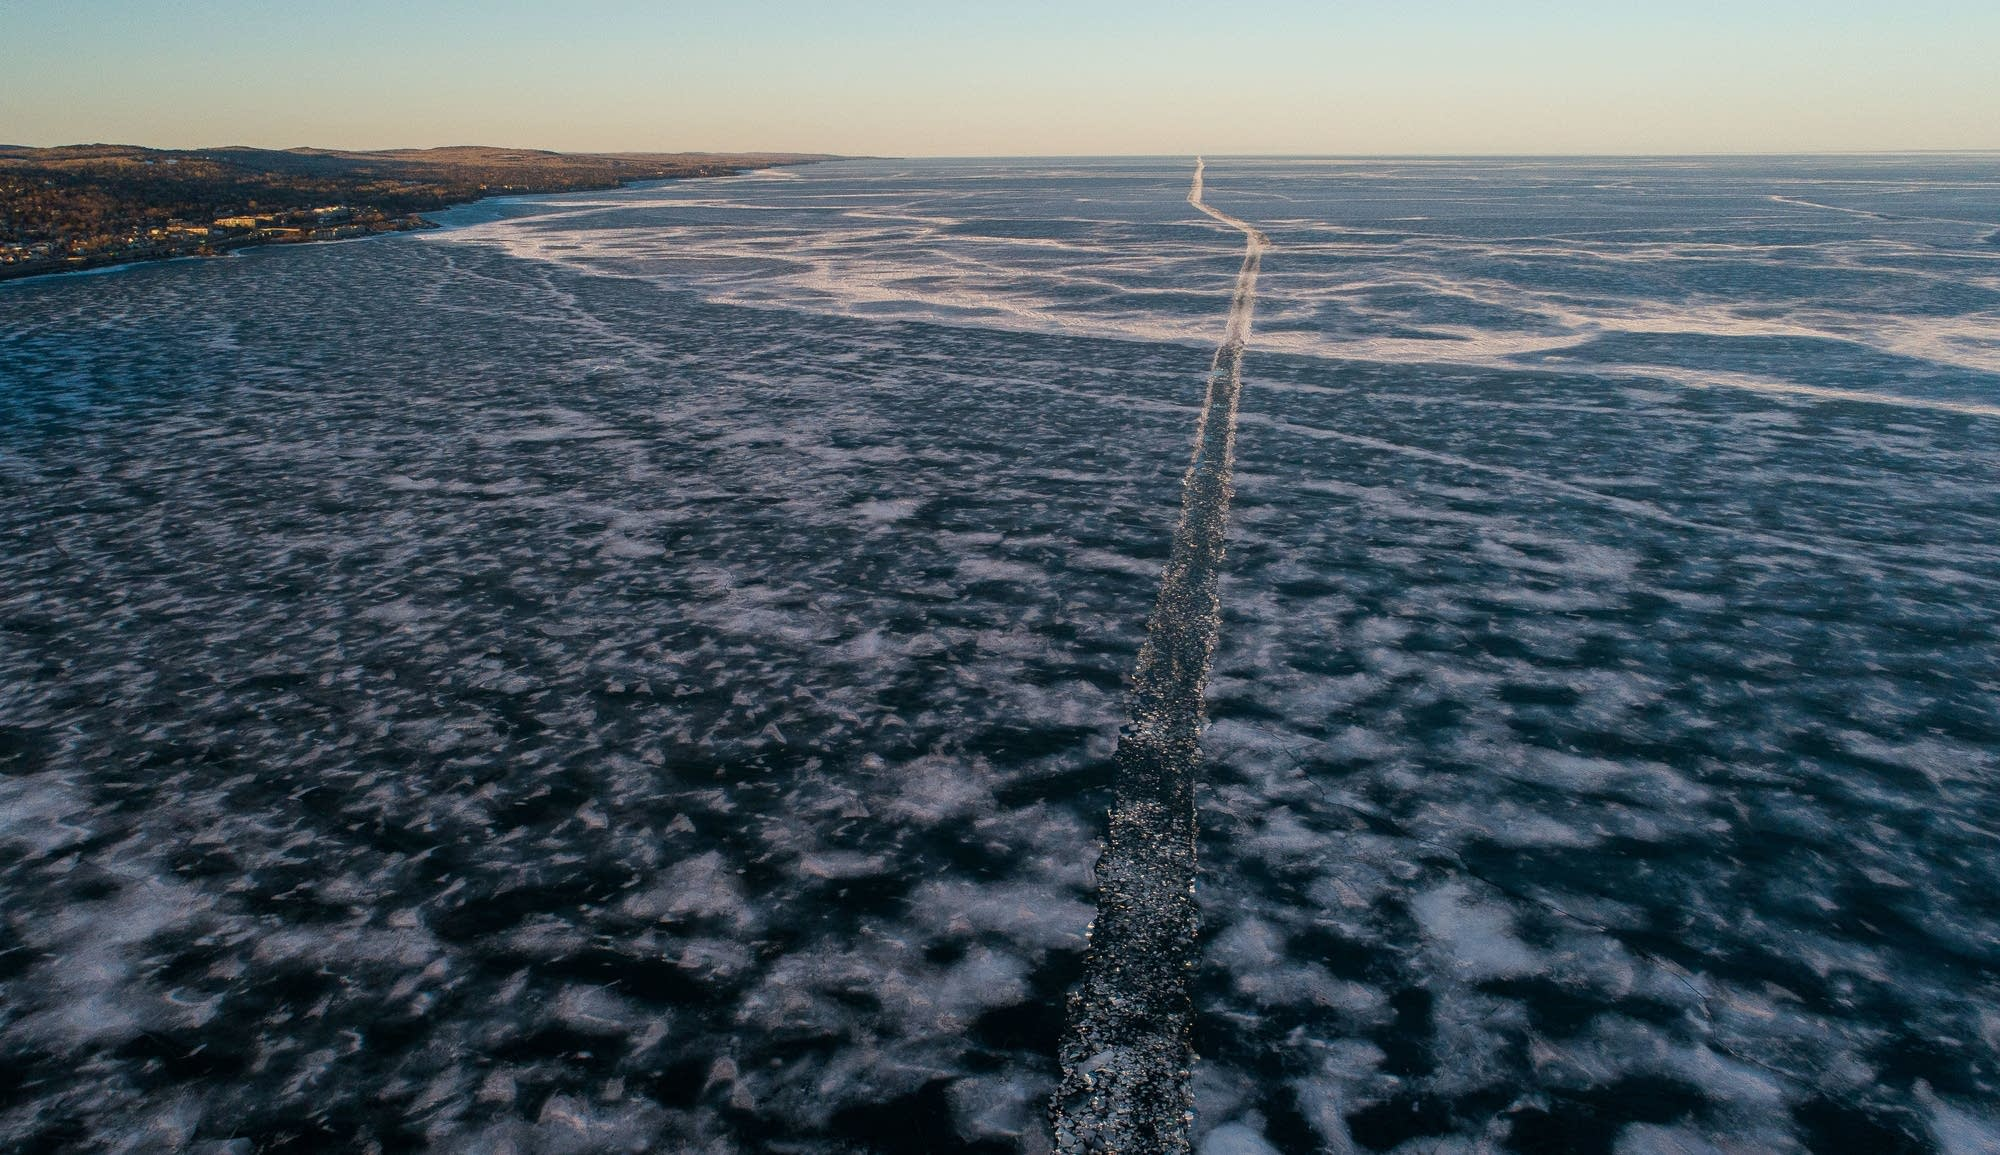 The route through the Lake Superior ice and Mackinaw are visible.